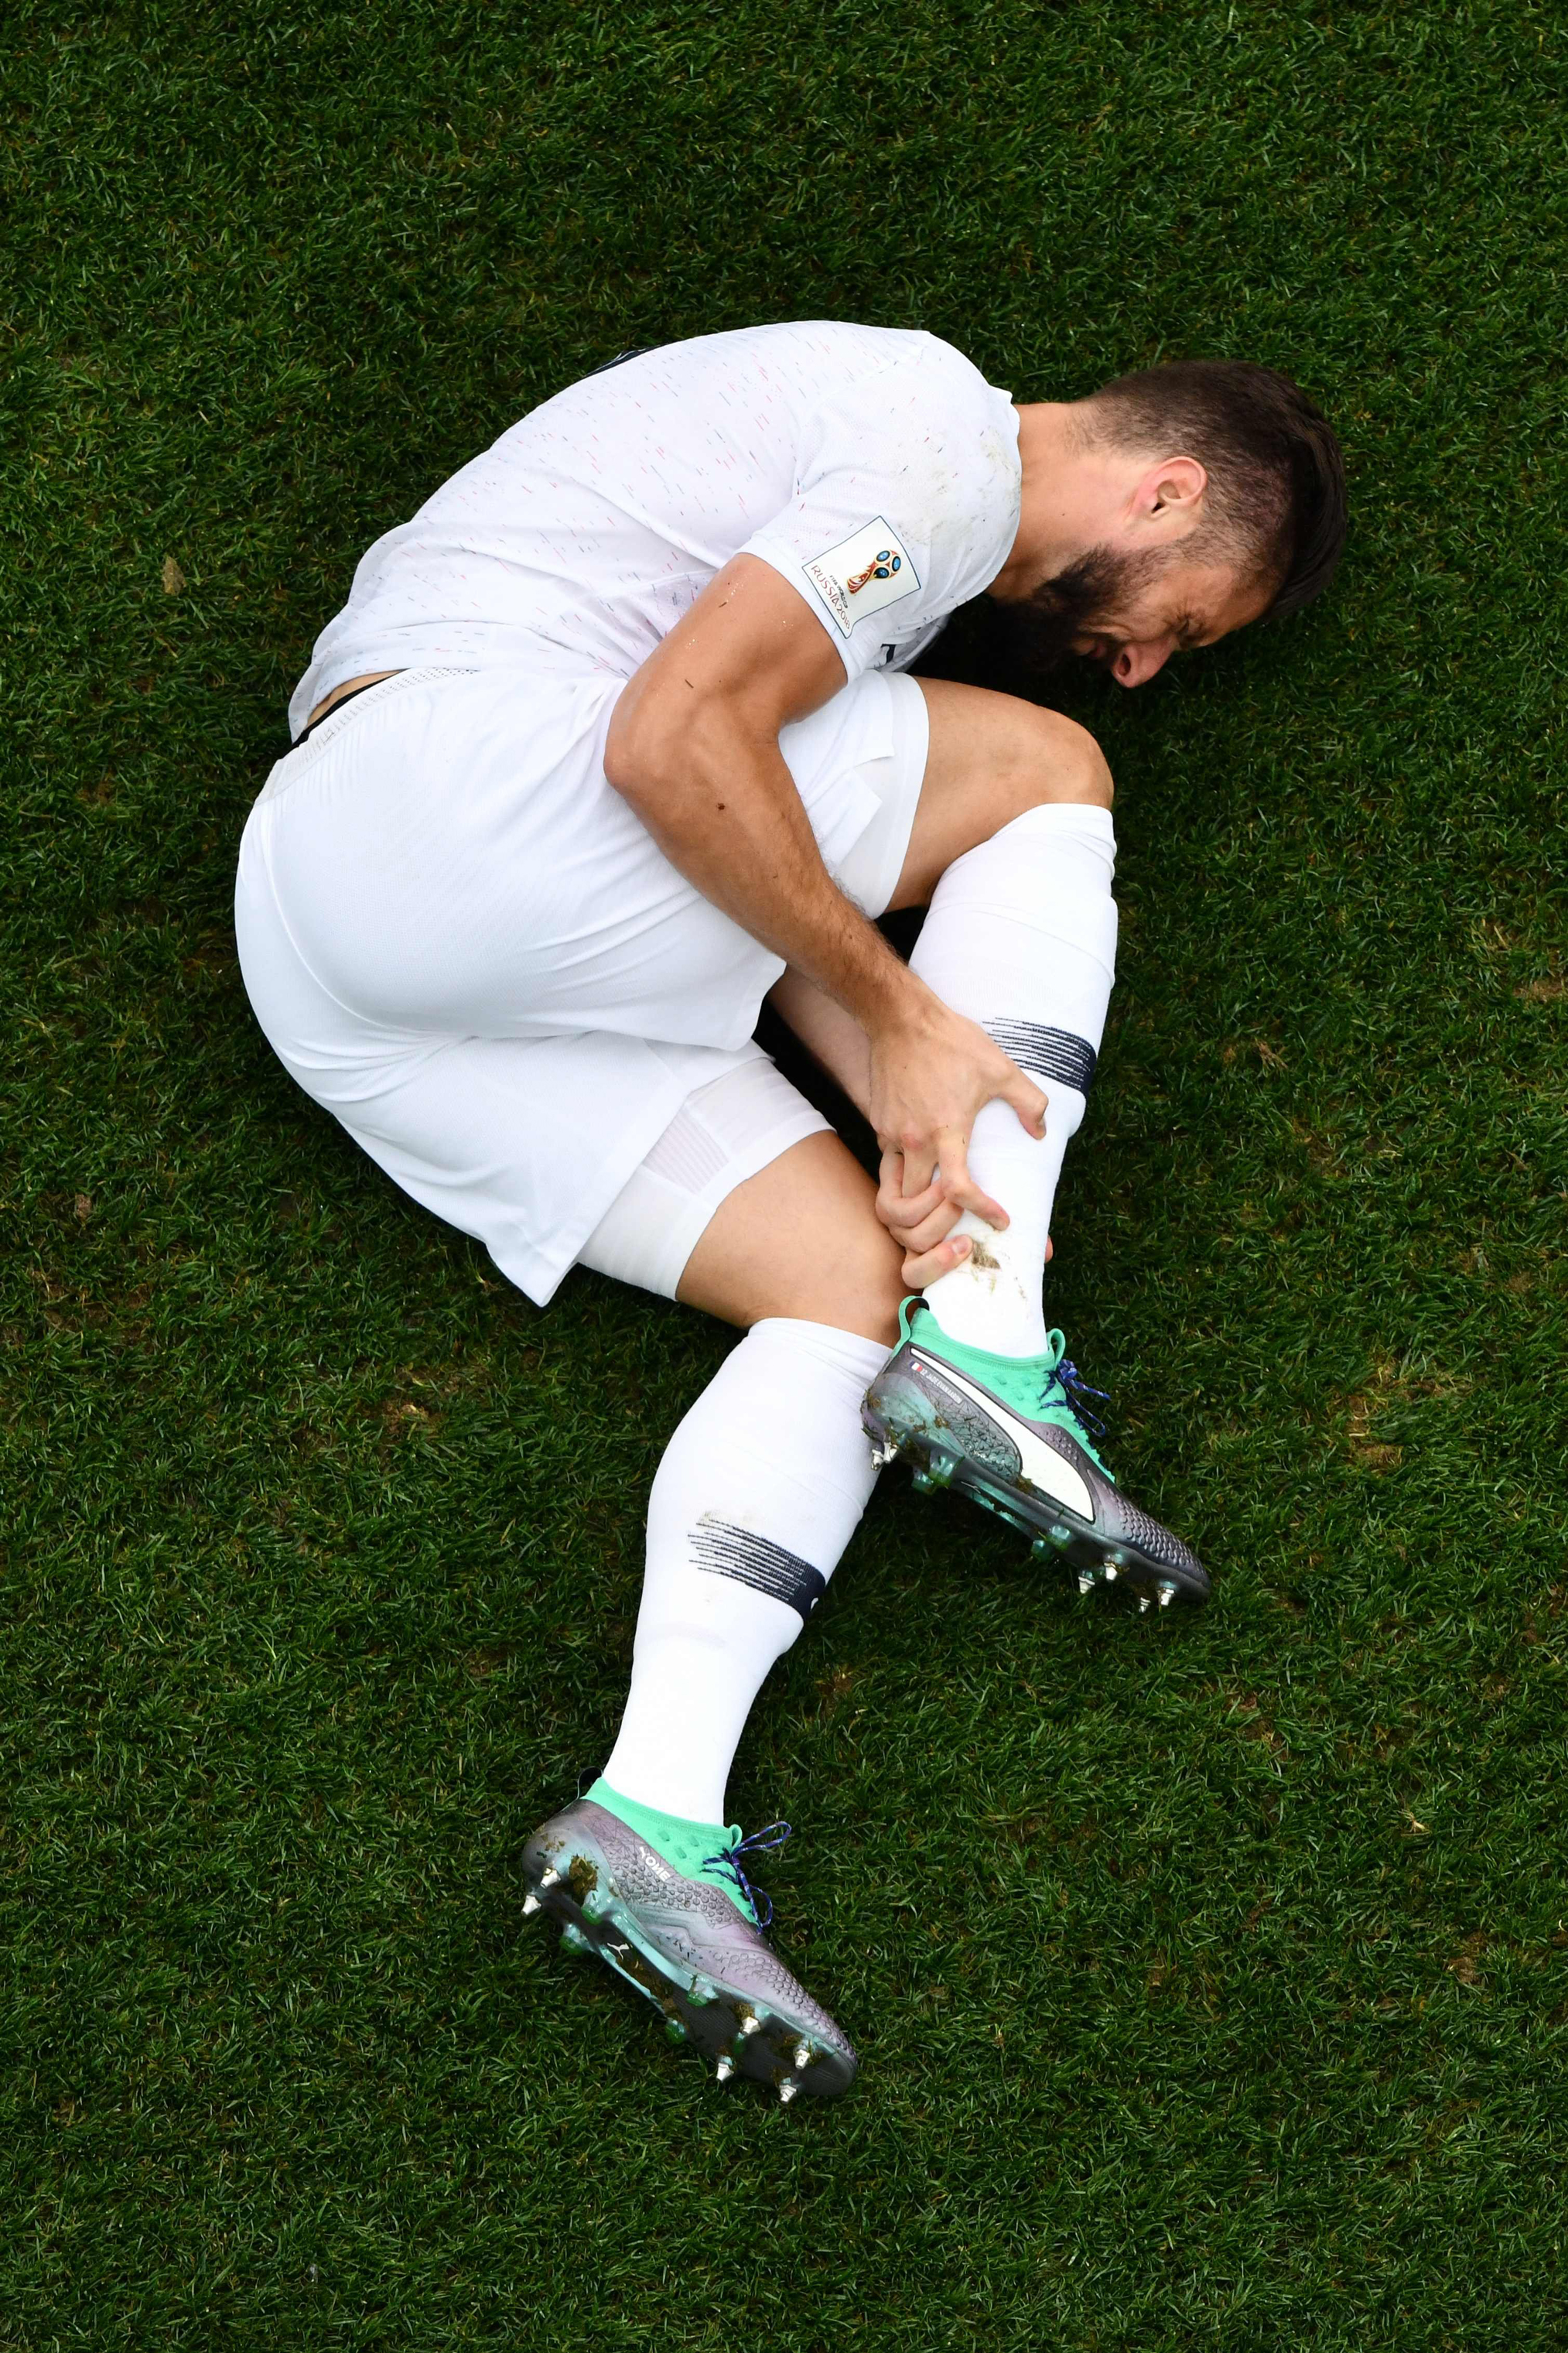 France's forward Olivier Giroud reacts after a challenge during the quarter-final football match between Uruguay and France on July 6, 2018.